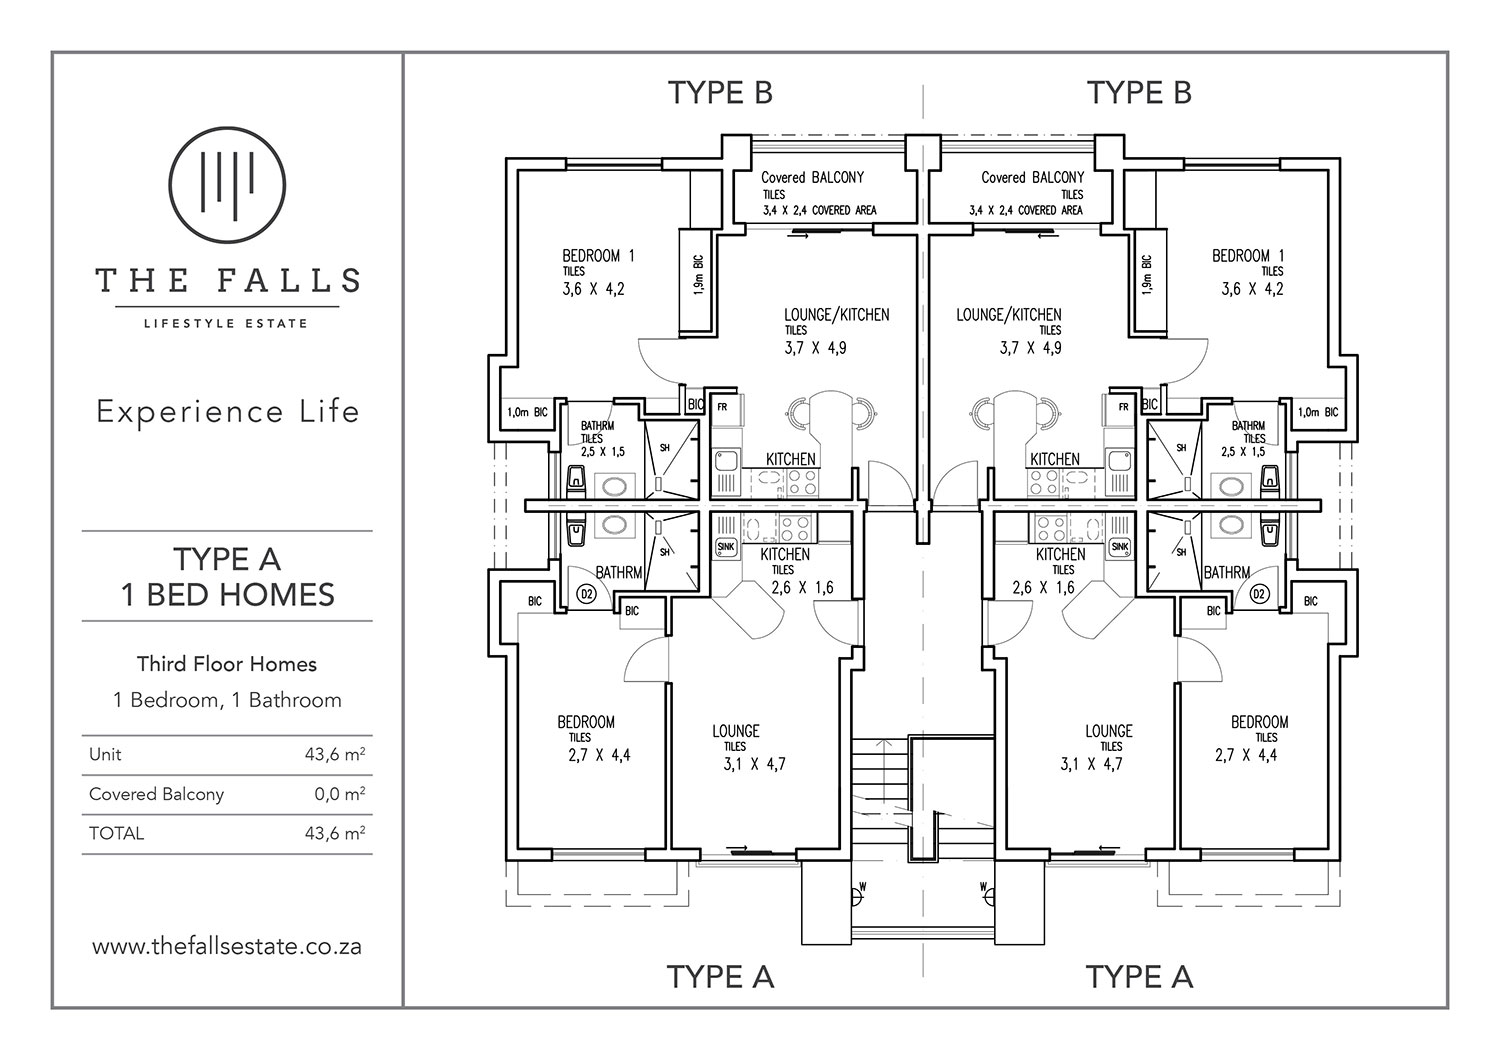 The Fall Lifestyle Estate - 1 Bed Type A Third Floor Home for sale - floorplans